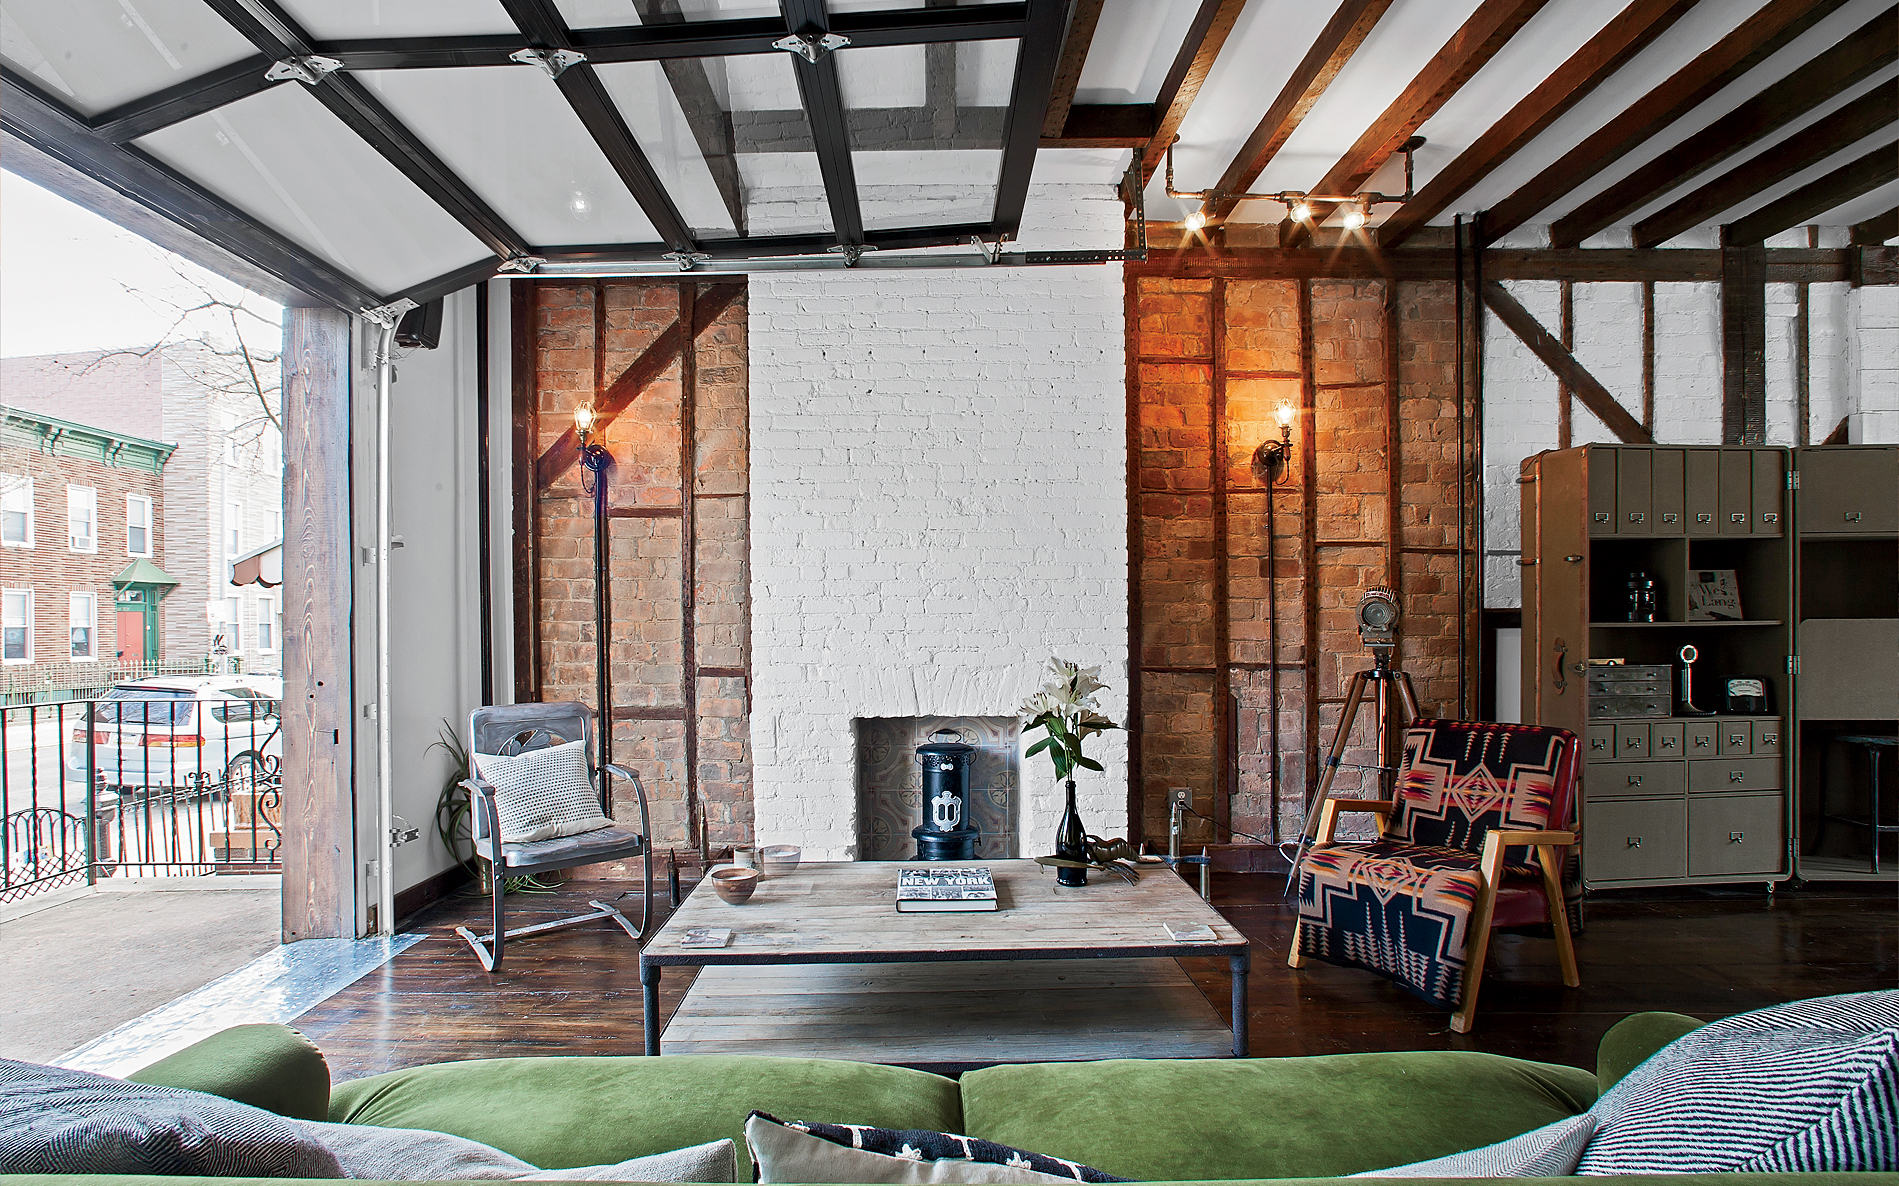 A Hip New Breed of Inns: Urban Cowboy, Brooklyn, NY